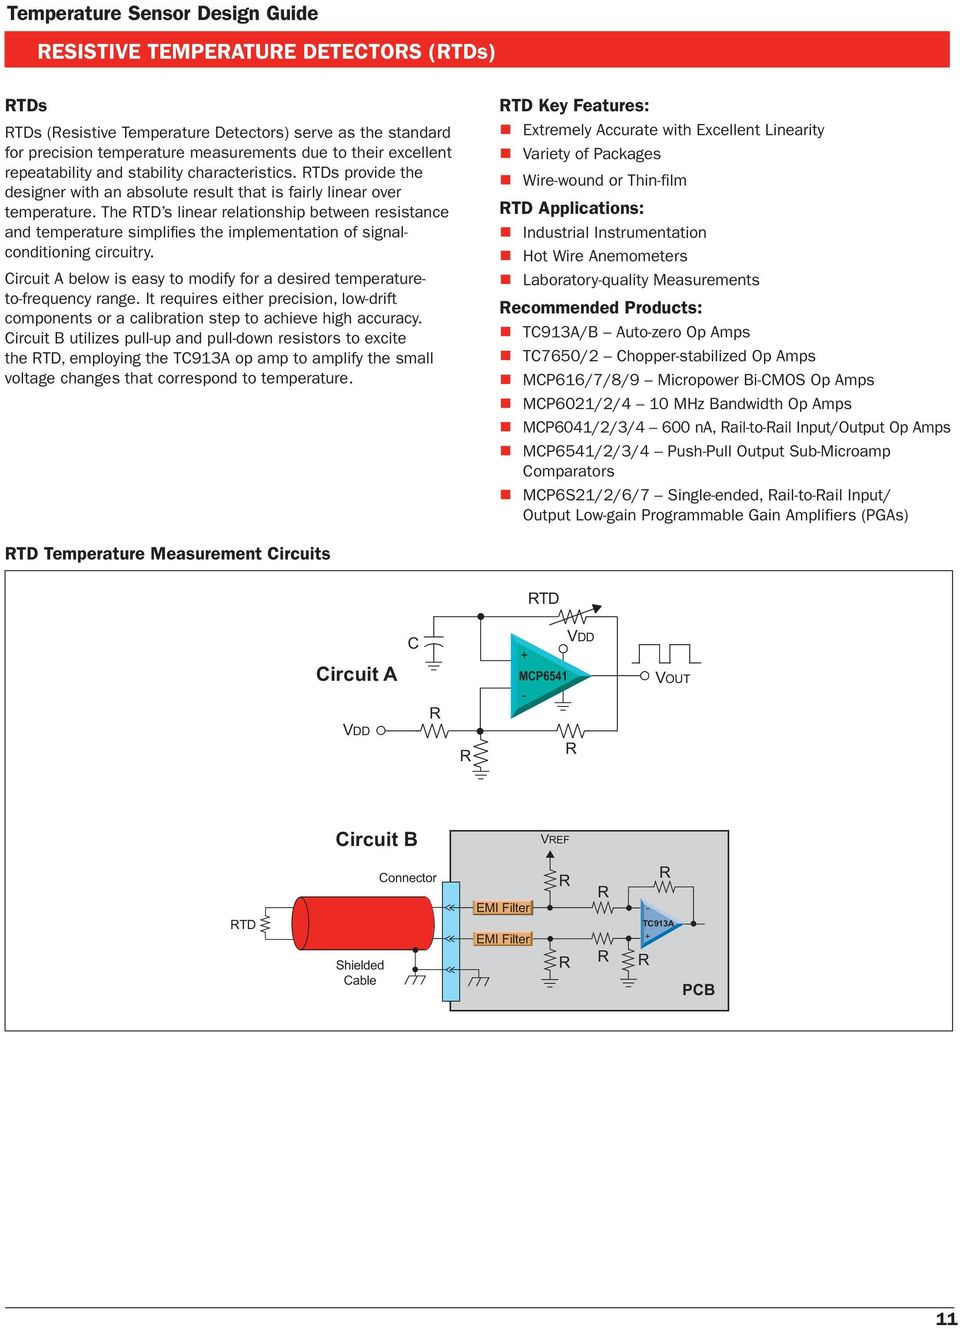 Temperature Sensor Design Guide Pdf Thermocouple Amplifier Circuit Diagram The Td S Linear Relationship Between Resistance And Simplifi Es Implementation Of Signalconditioning Circuitry